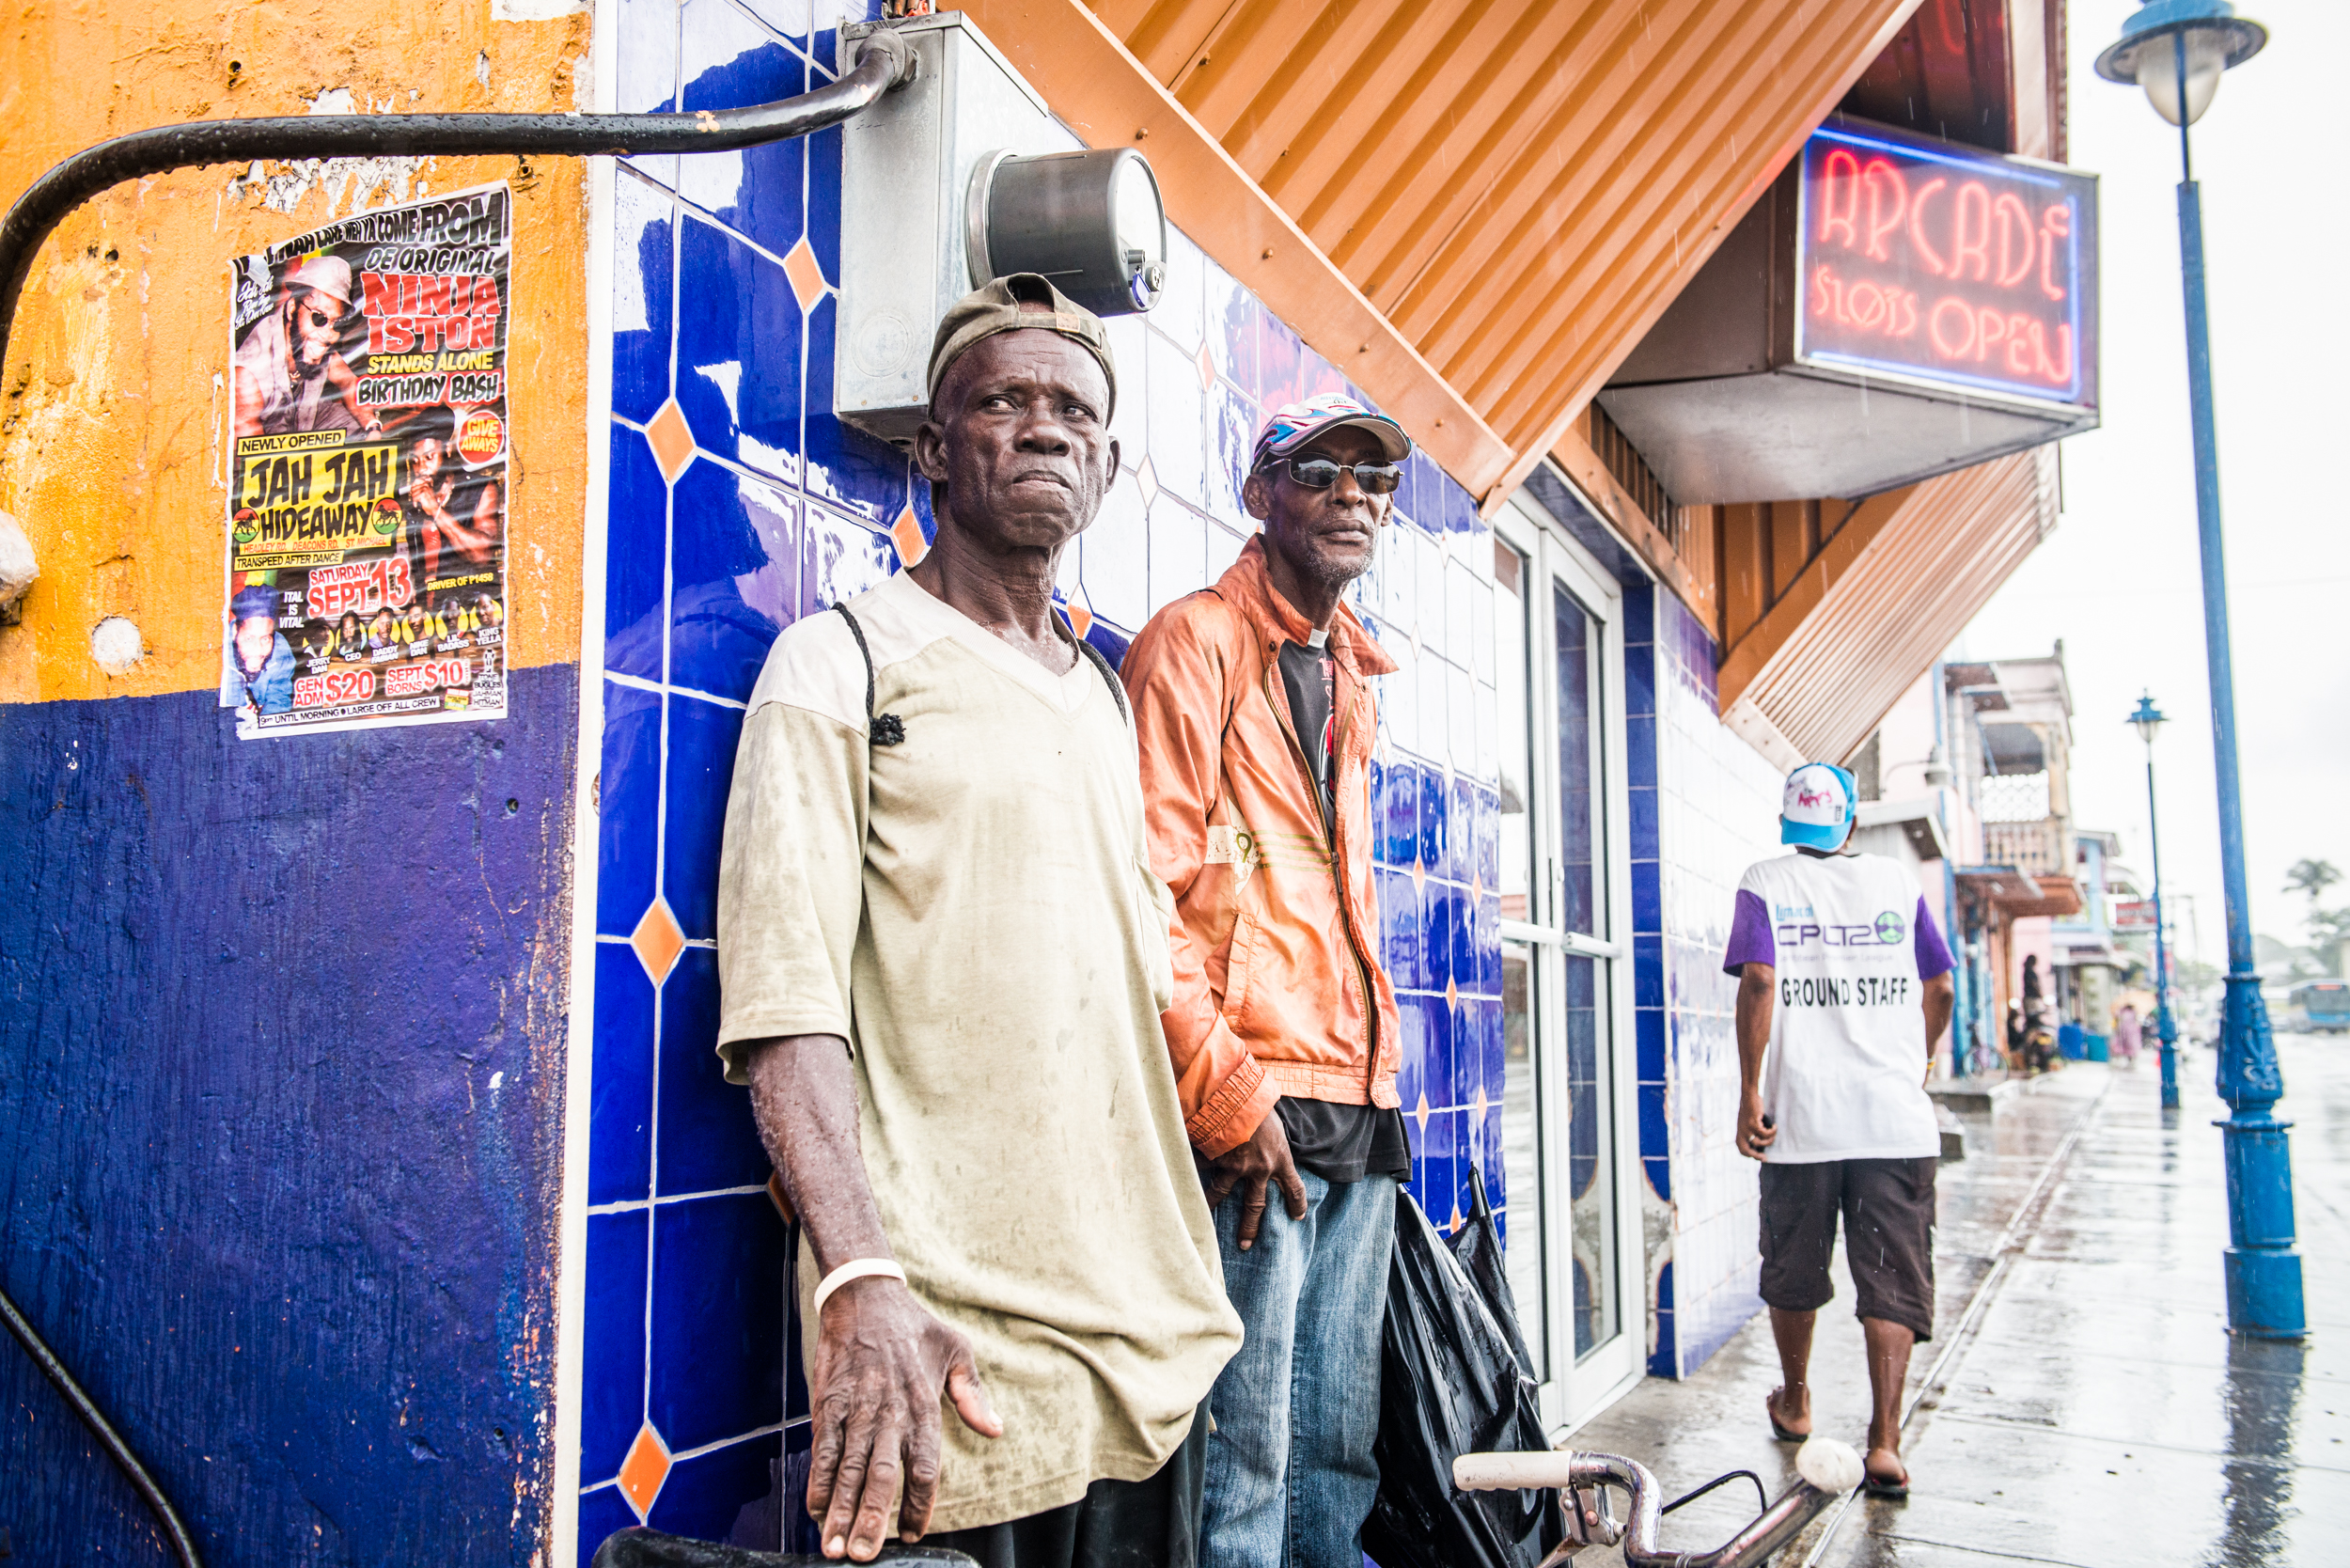 Men outside arcade in Barbados - Travel - photo credit Nicola Bailey.jpg